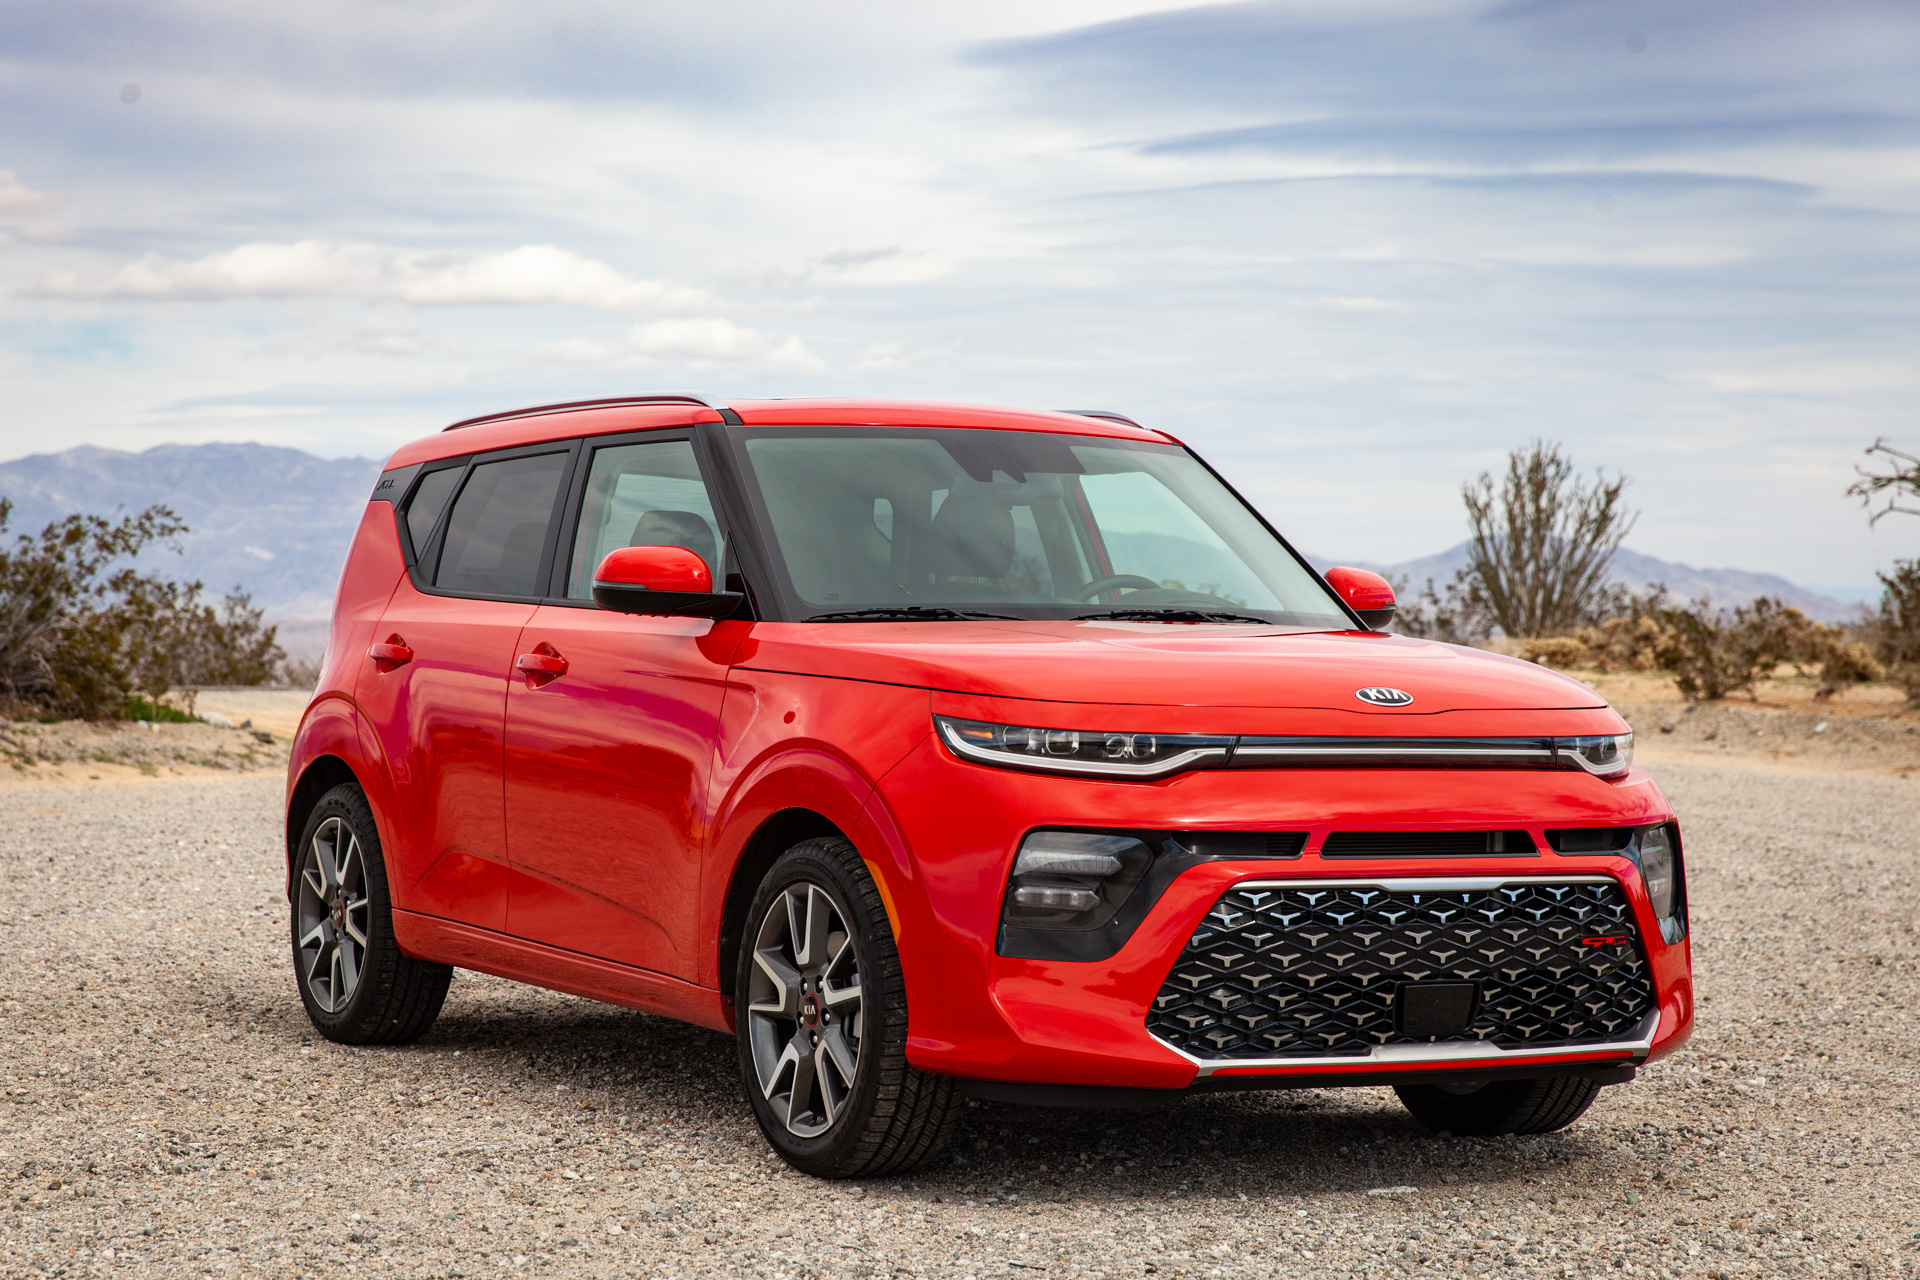 2020 Kia Soul Vs. 2020 Mazda 3: Compare Cars - 2022 Kia Soul Gas Mileage Configurations, Specification